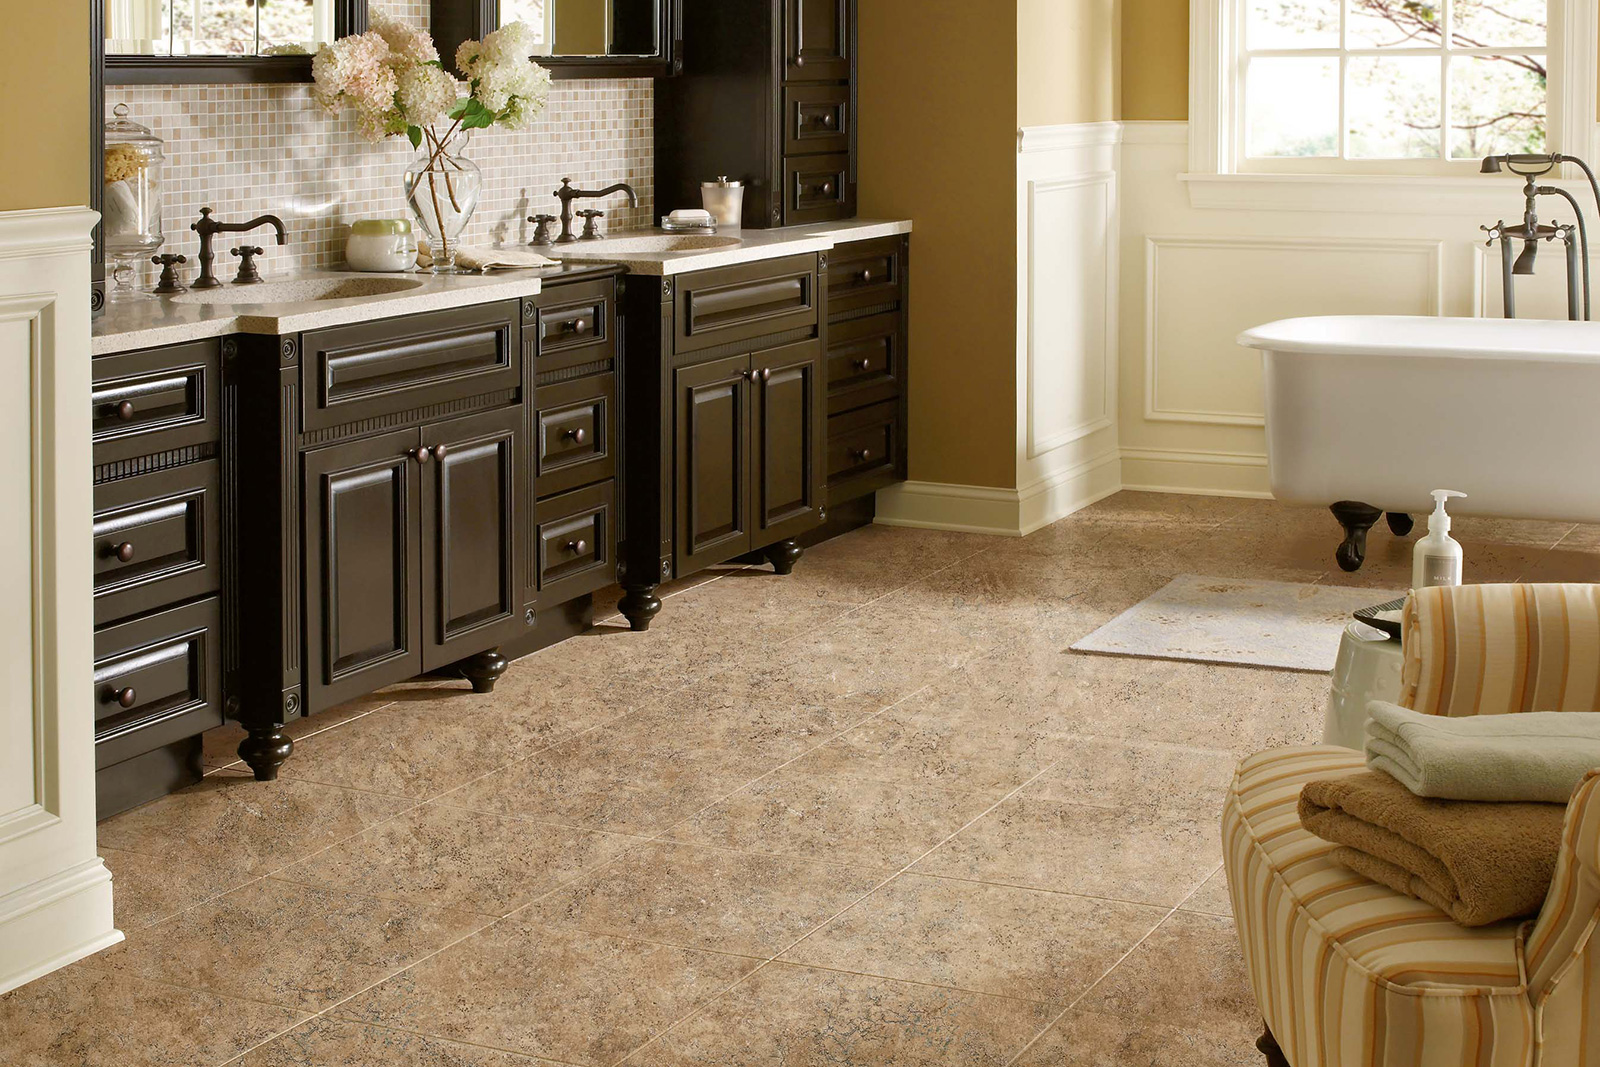 Bathroom Flooring | Bathroom Flooring Options